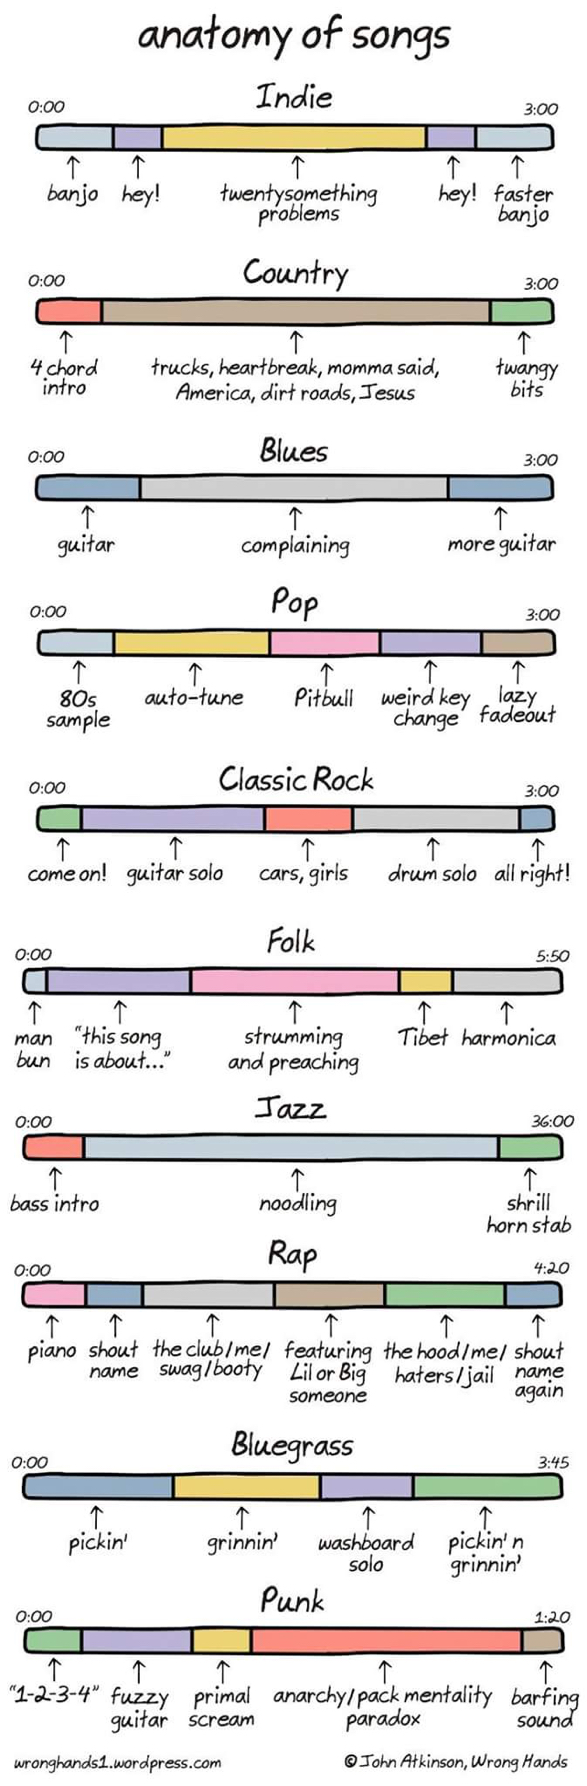 The anatomy of songs